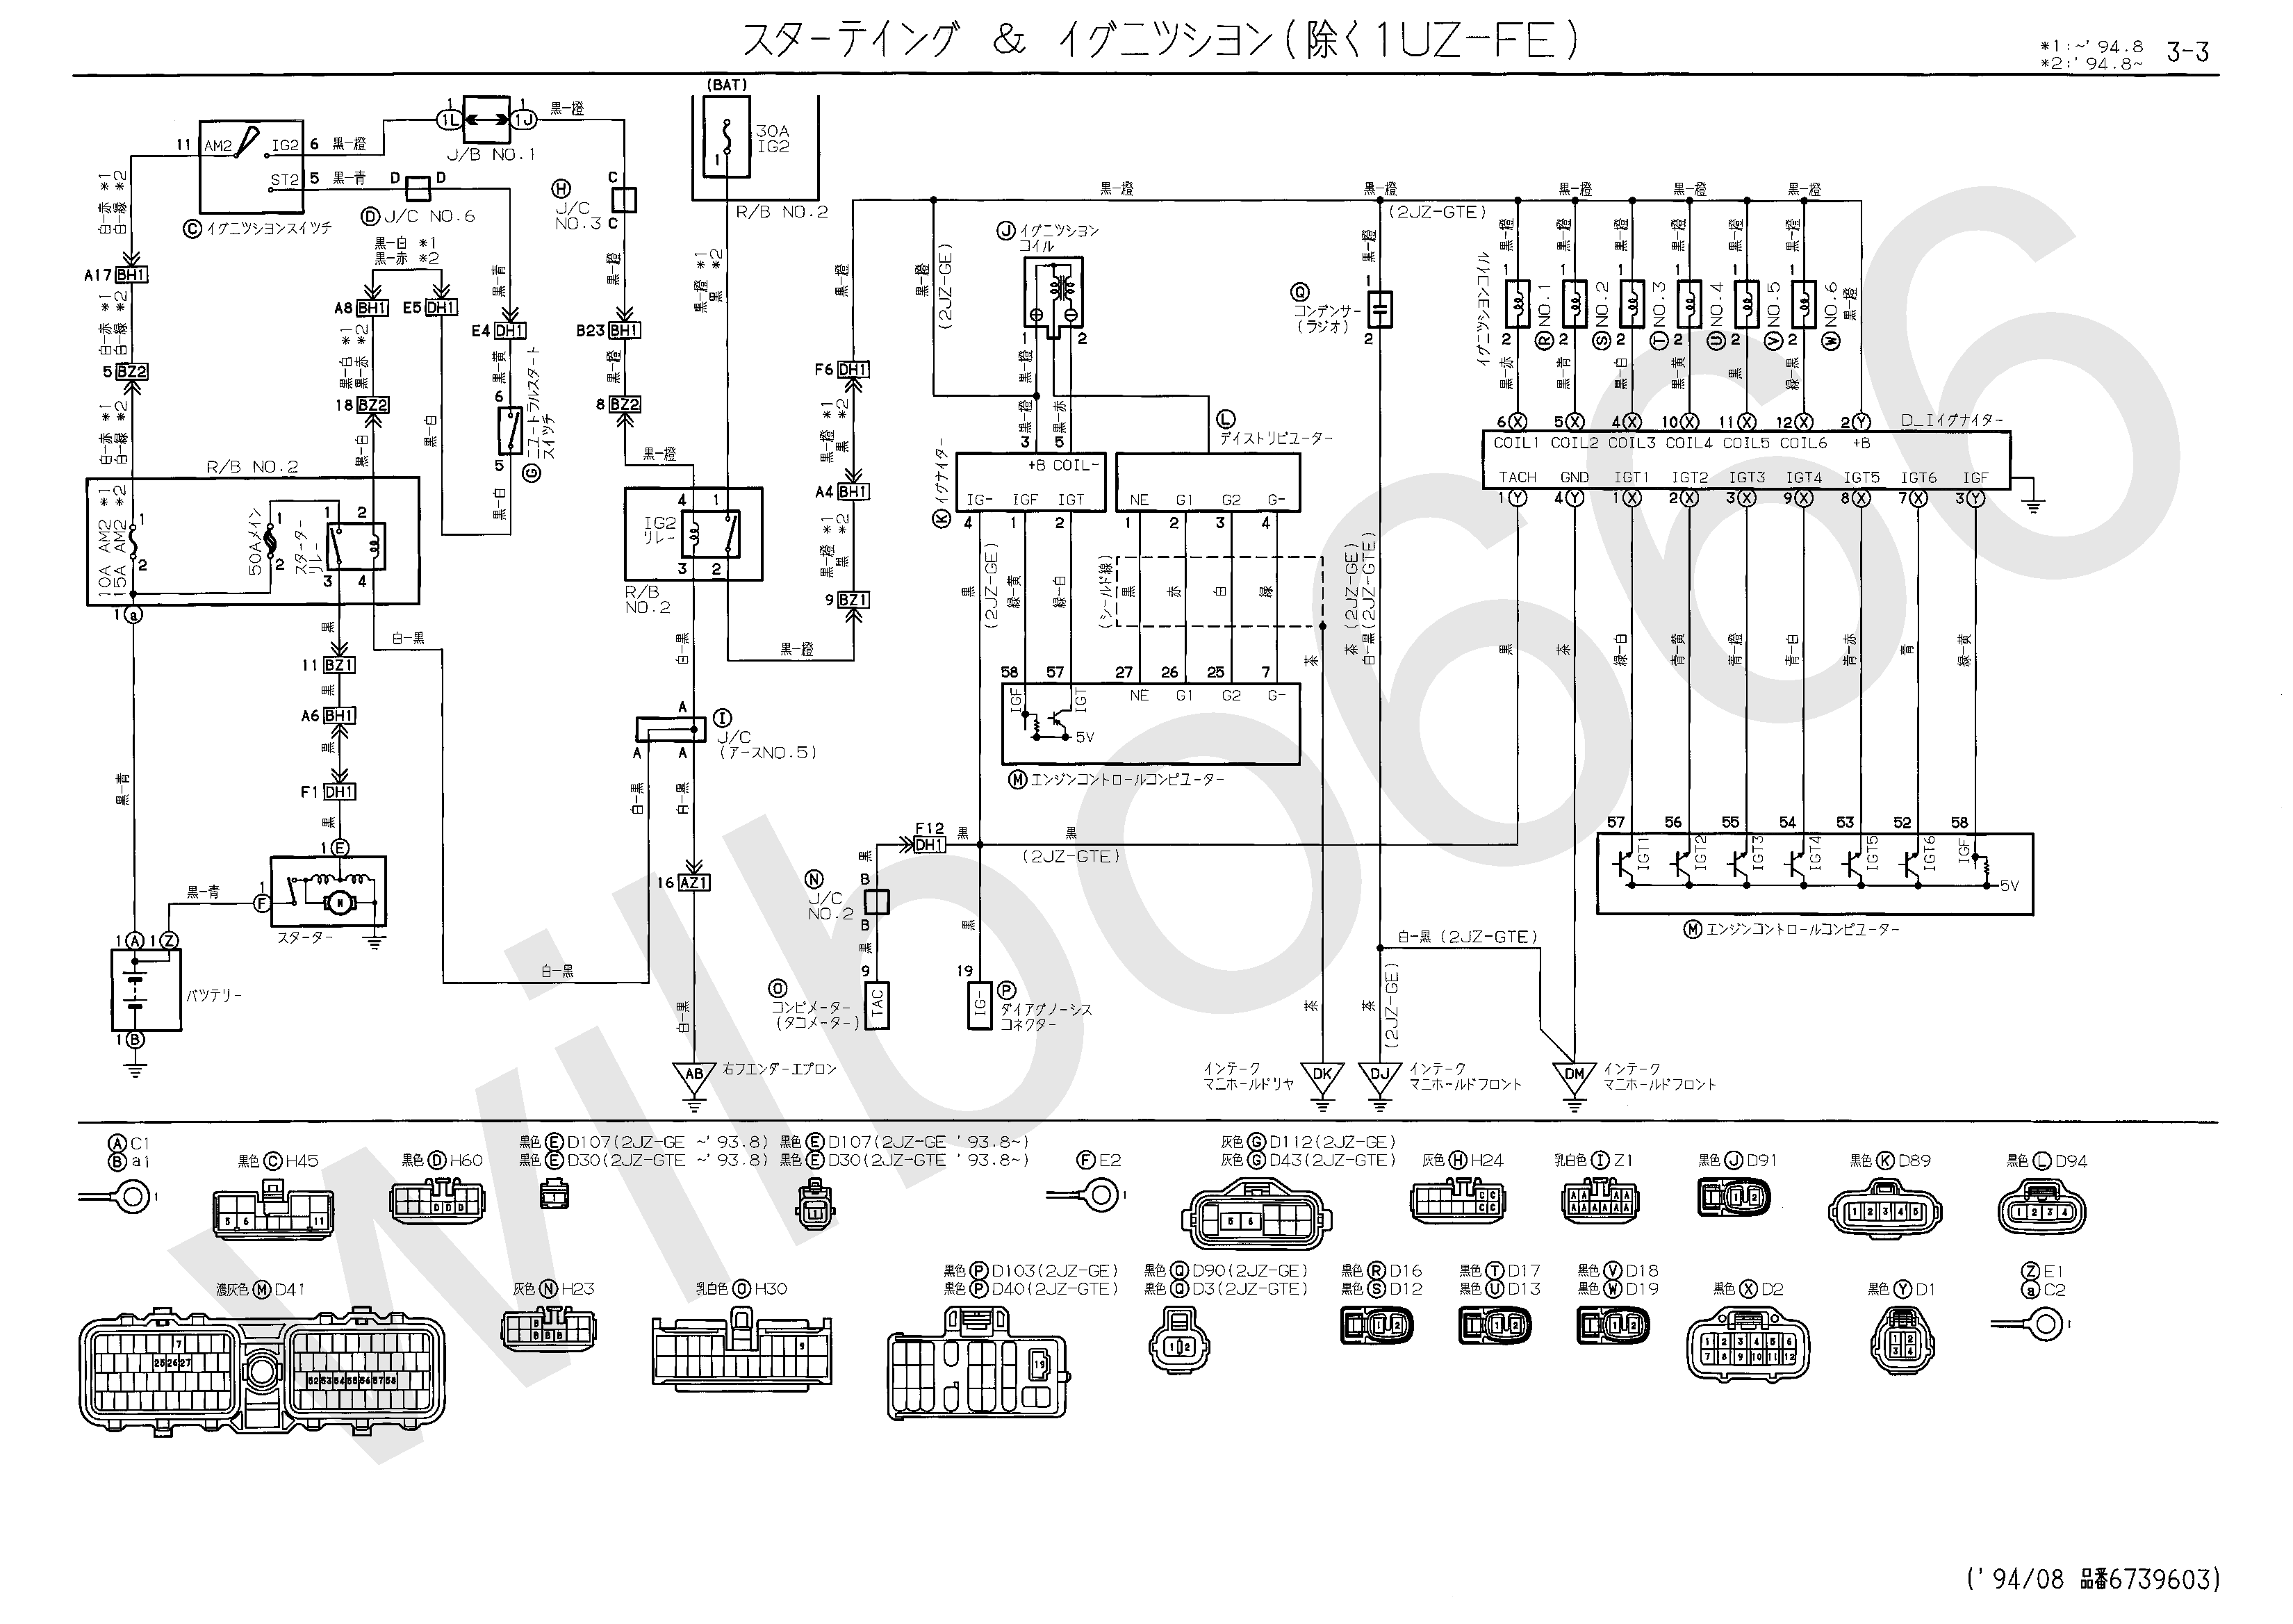 JZS14%23%2C UZS14%23 Electrical Wiring Diagram 6739604 3 3?resize\\\\\\\\\\\\\\\\\\\\\\\\\\\\\\\\\\\\\\\\\\\\\\\\\\\\\\\\\\\\\\\\\\\\\\\\\\\\\\\\\\\\\\\\\\\\\\\\\\\\\\\\\\\\\\\\\\\\\\\\\\\\\\\\\\\\\\\\\\\\\\\\\\\\\\\\\\\\\\\\\\\\\\\\\\\\\\\\\\\\\\\\\\\\\\\\\\\\\\\\\\\\\\\\\\\\\\\\\\\\\\\\\\\\\\\\\\\\\\\\\\\\\\\\\\\\\\\\\\\\\\\\\\\\\\\\\\\\\\\\\\\\\\\\\\\\\\\\\\\\\\\\\\\\\\\\\\\\\\\\\\\\\\\\\\\\\\\\\\\\\\\\\\\\\\\\\\\\\\\\\\\\\\\\\\\\\\\\\\\\\\\\\\\\\\\\\\\\\\\\\\\\\\\\\\\\\\\\\\\\\\\\\\\\\\\\\\\\\\\\\\\\\\\\\=665%2C471 rb26 wiring diagram rb26 wiring harness diagram \u2022 wiring diagrams  at love-stories.co